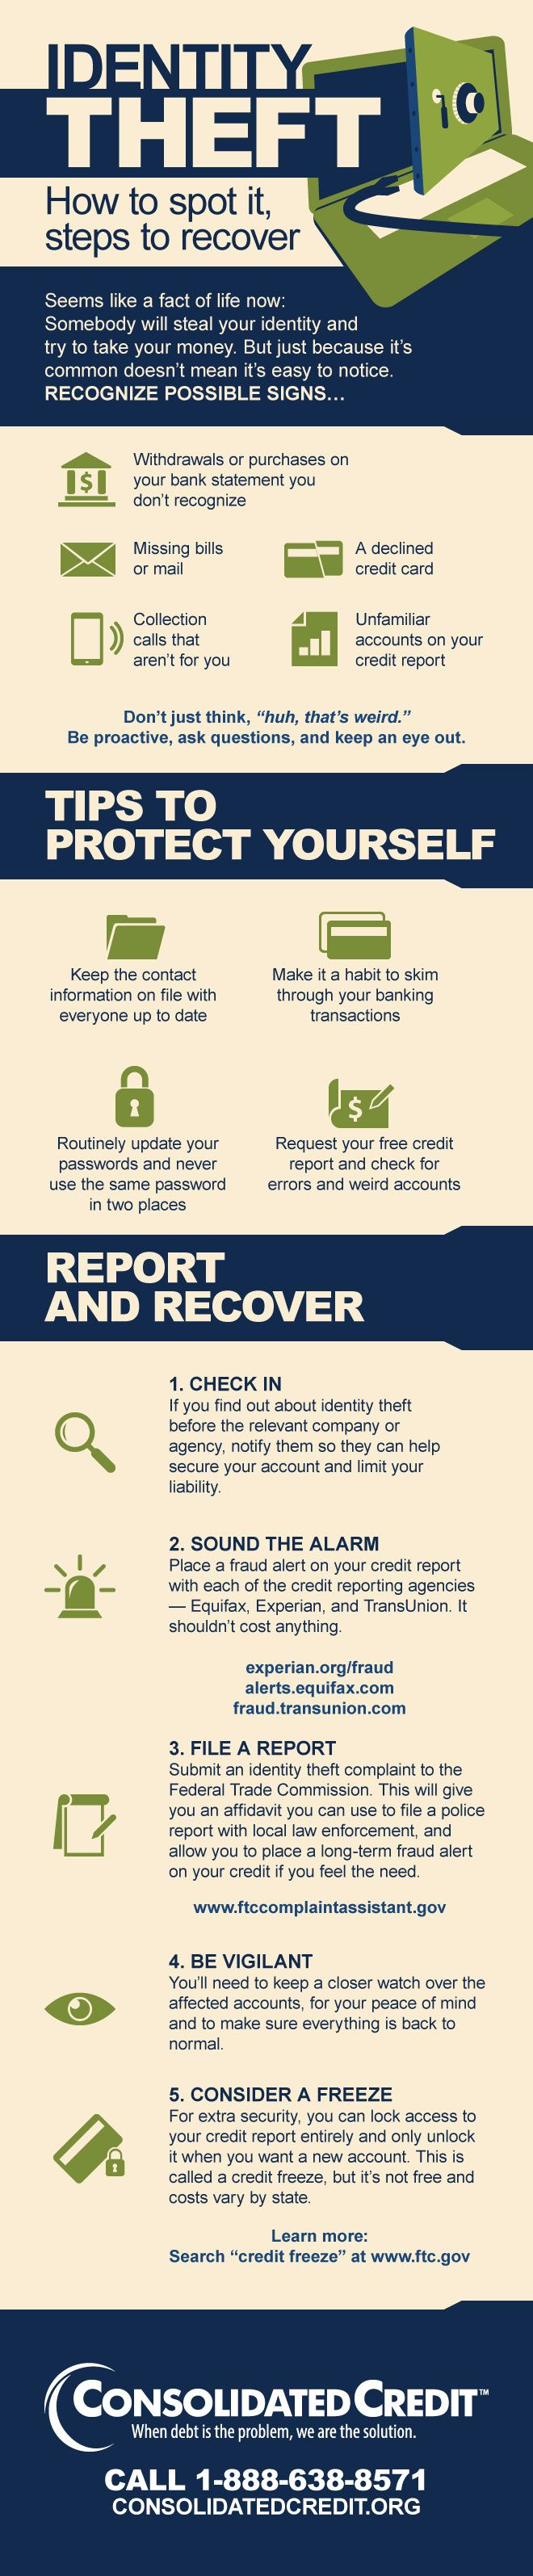 Identity Theft Protection Infographic Identity Theft Protection